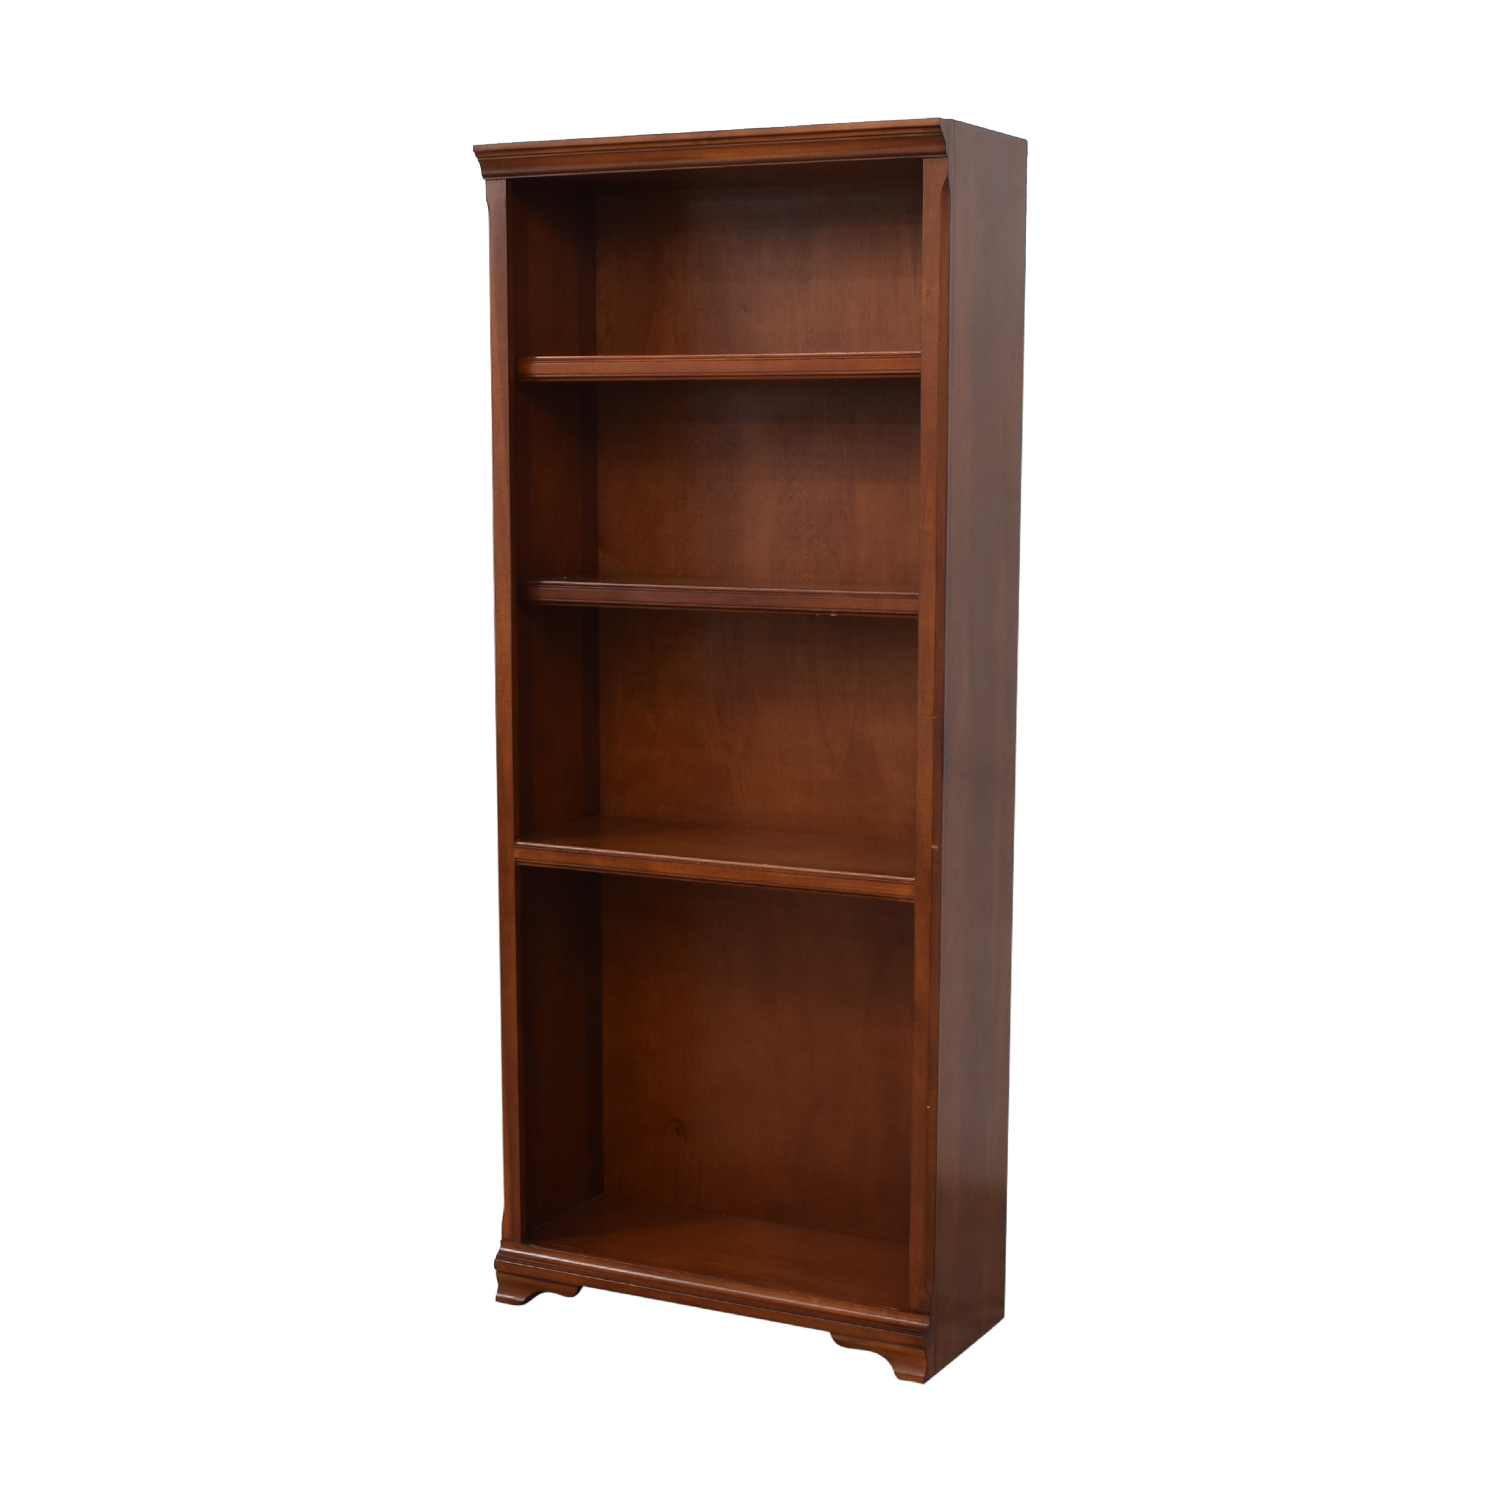 Raymour & Flanigan Raymour & Flanigan Bookcase price